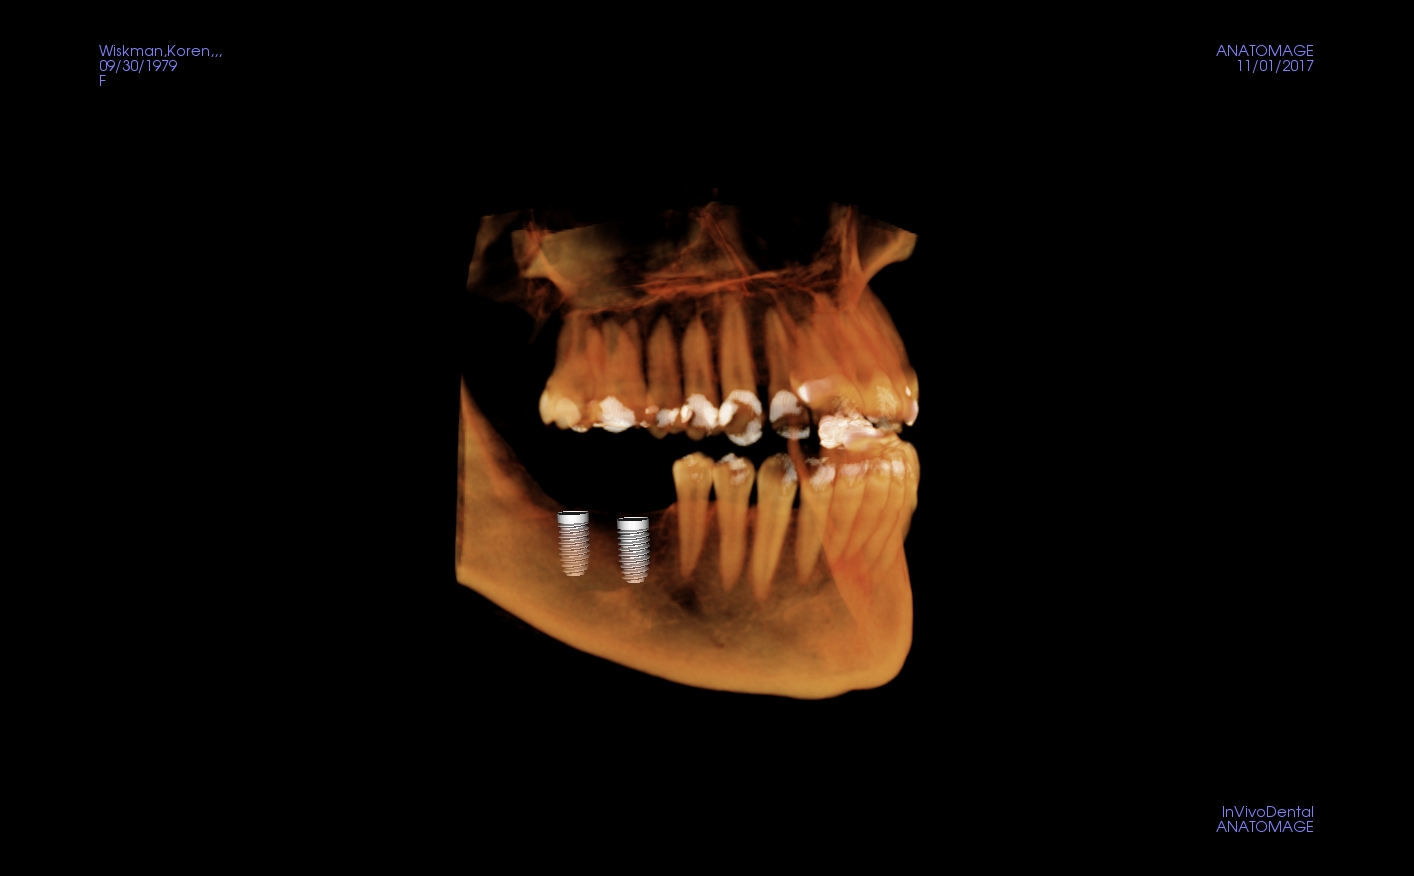 Kori mandibular implants